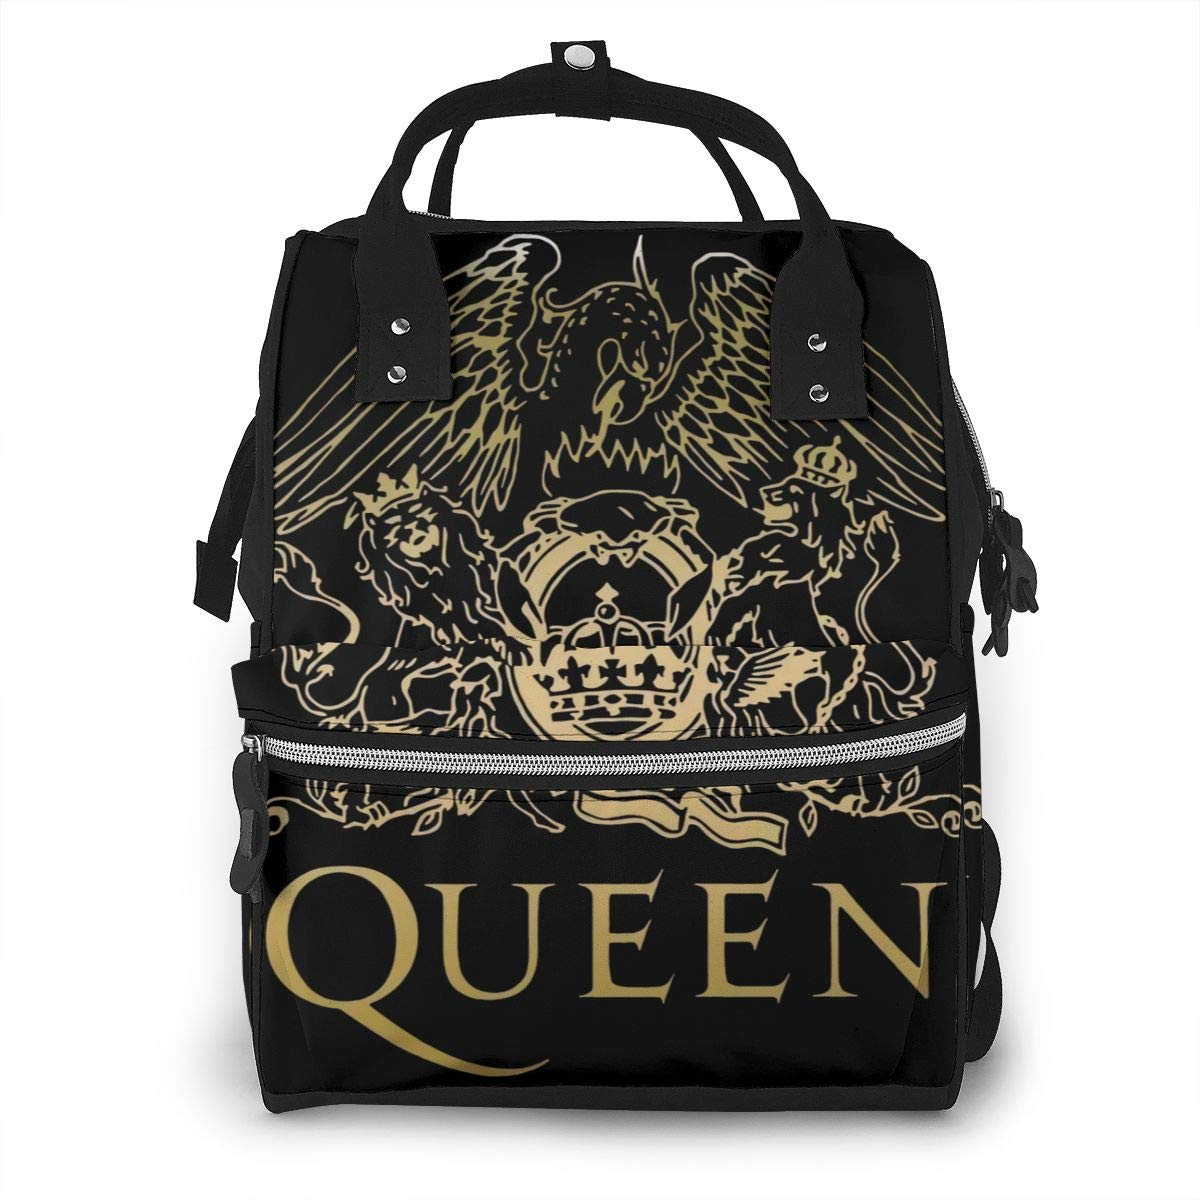 Queen Band Diaper Bags Mummy Backpack Multi Functions Large Capacity Nappy Bag Nursing Bag for Baby Care for Traveling